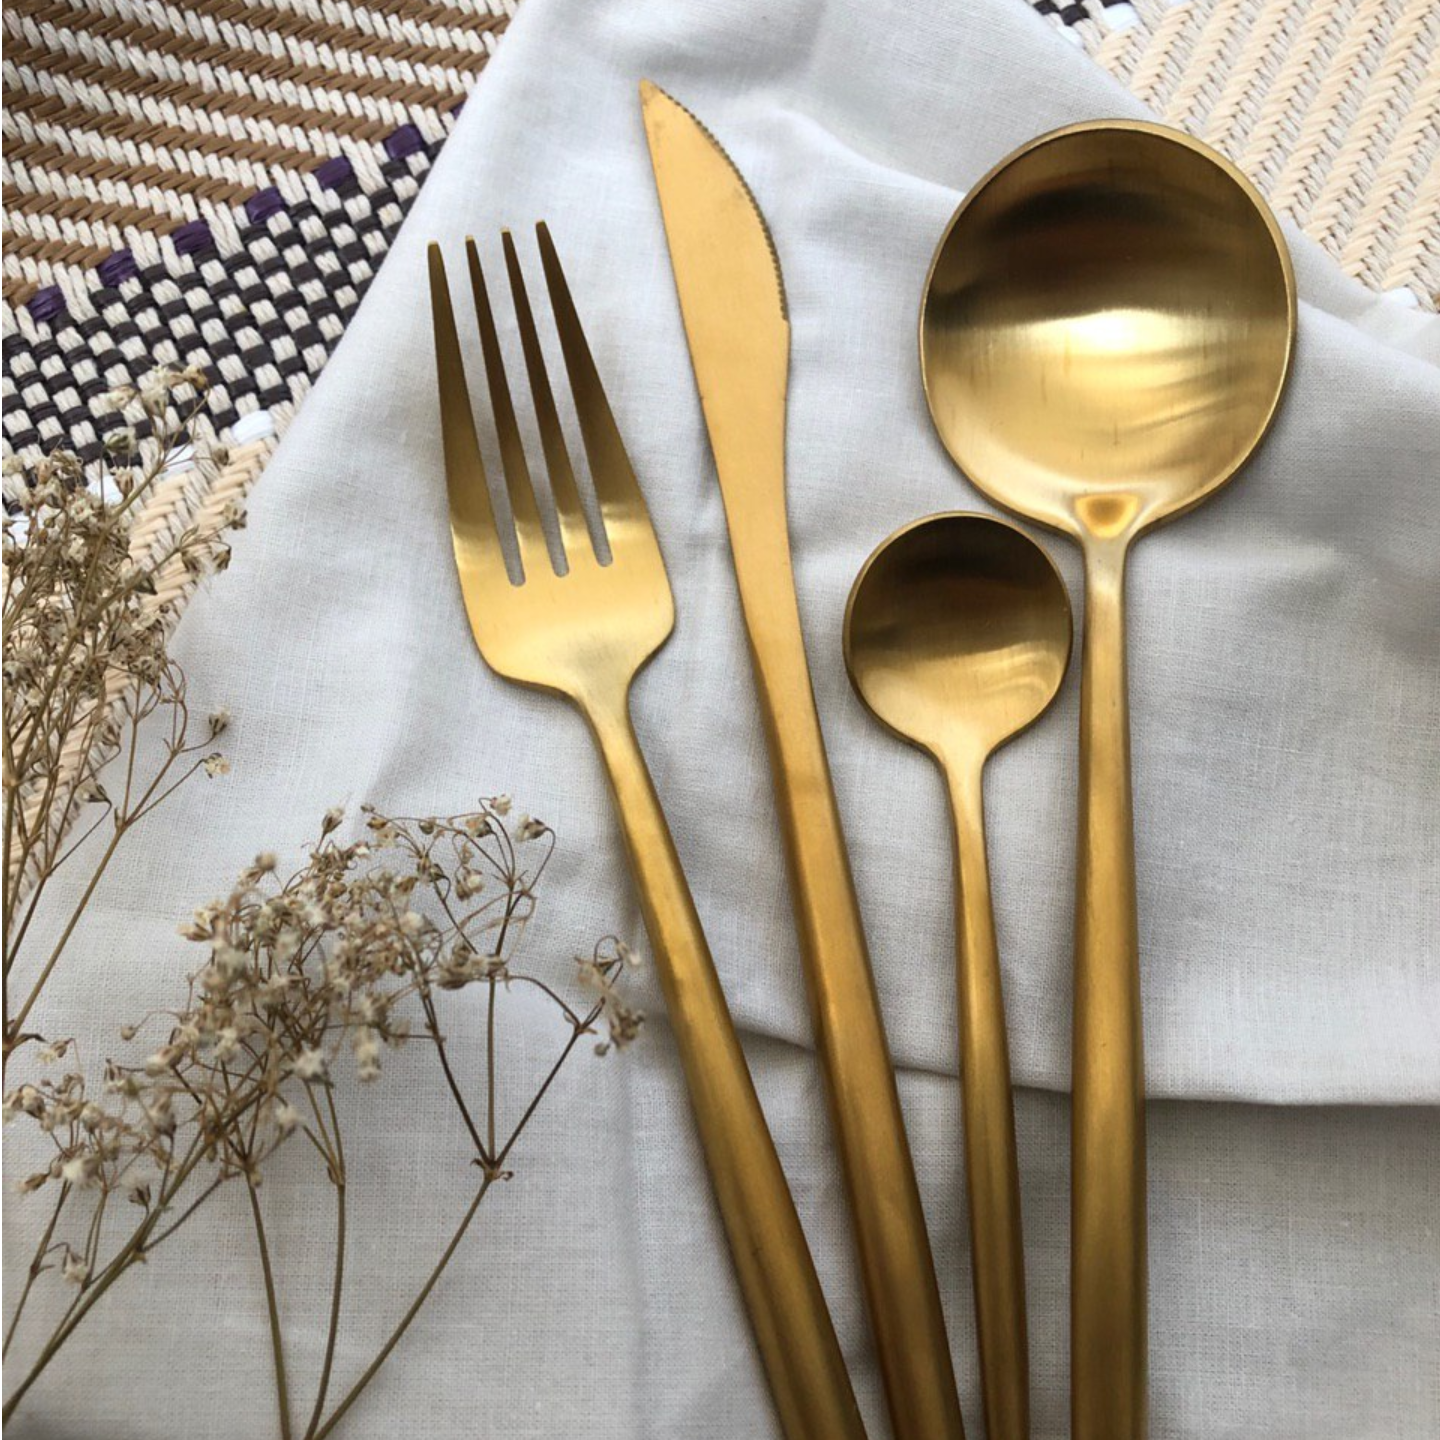 A set of gold cutlery containing a tea spoon, spoon, fork and knife.